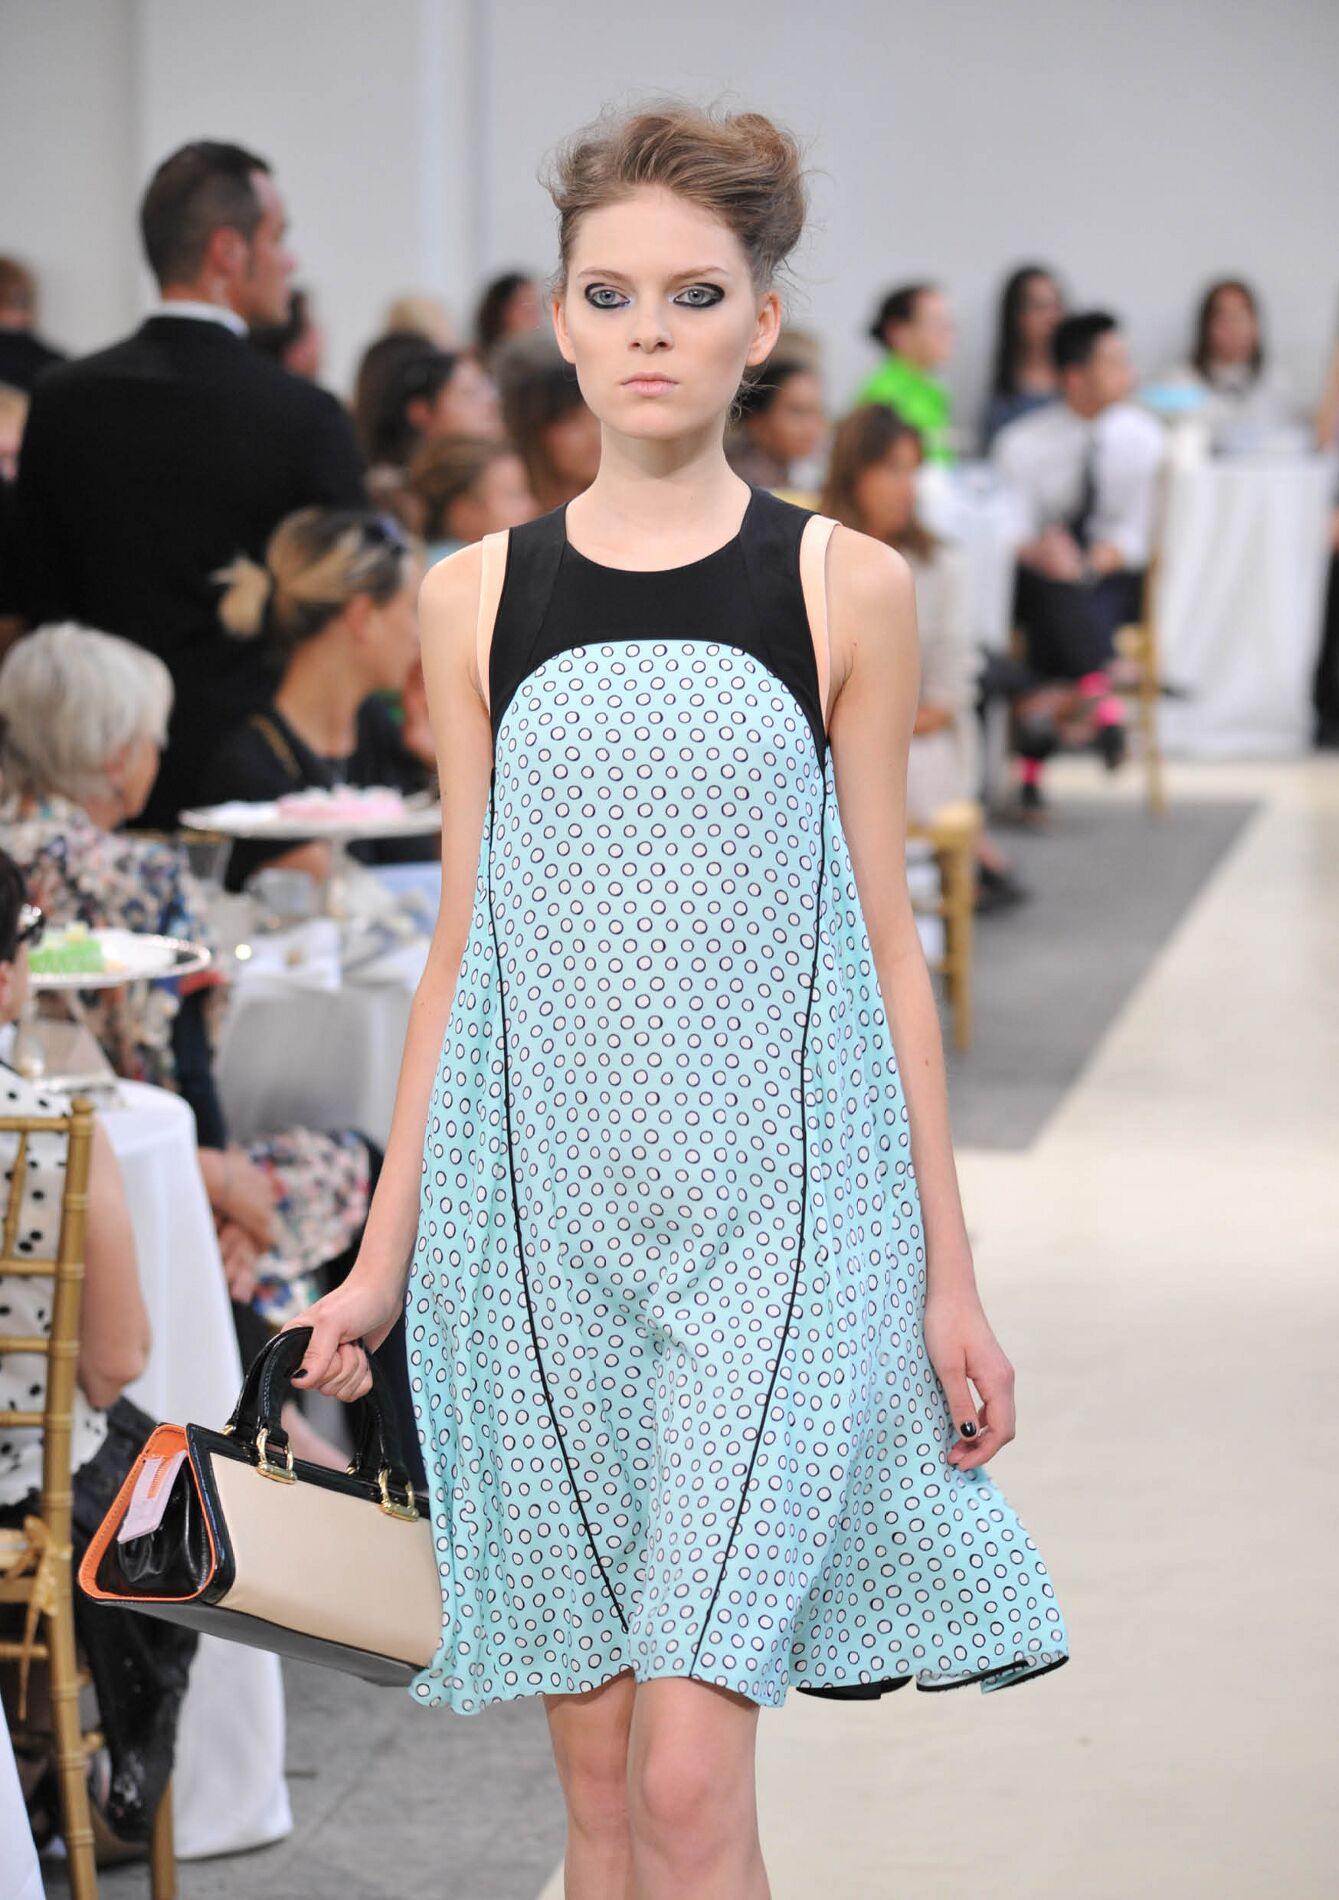 Antonio Marras Spring Summer 2013